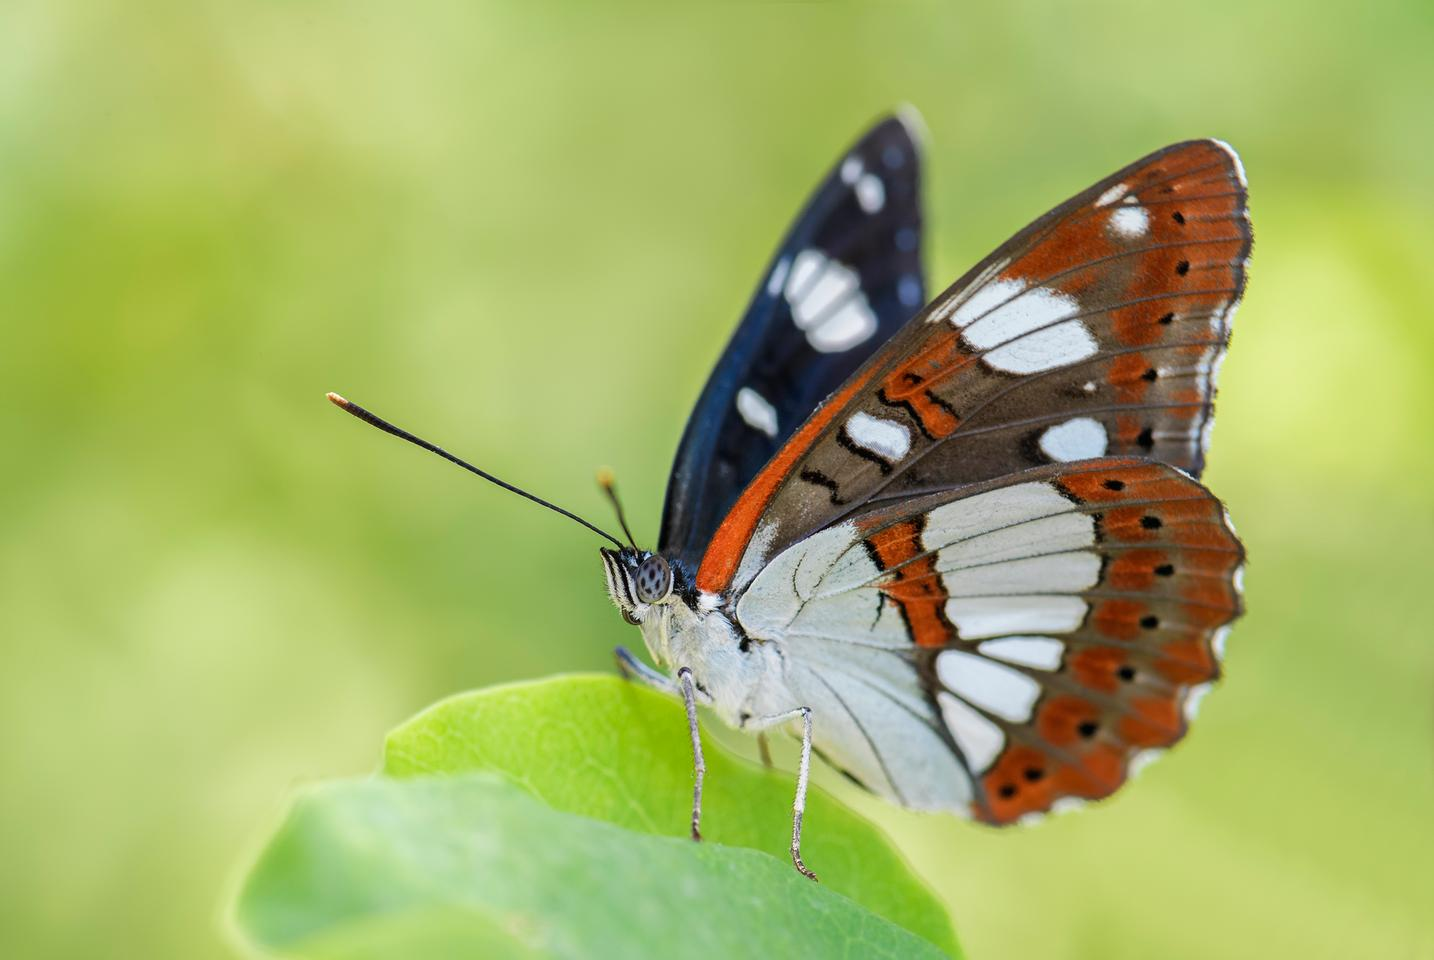 A new study of butterflies in flight has revealed some neat trickery they use to evade predators